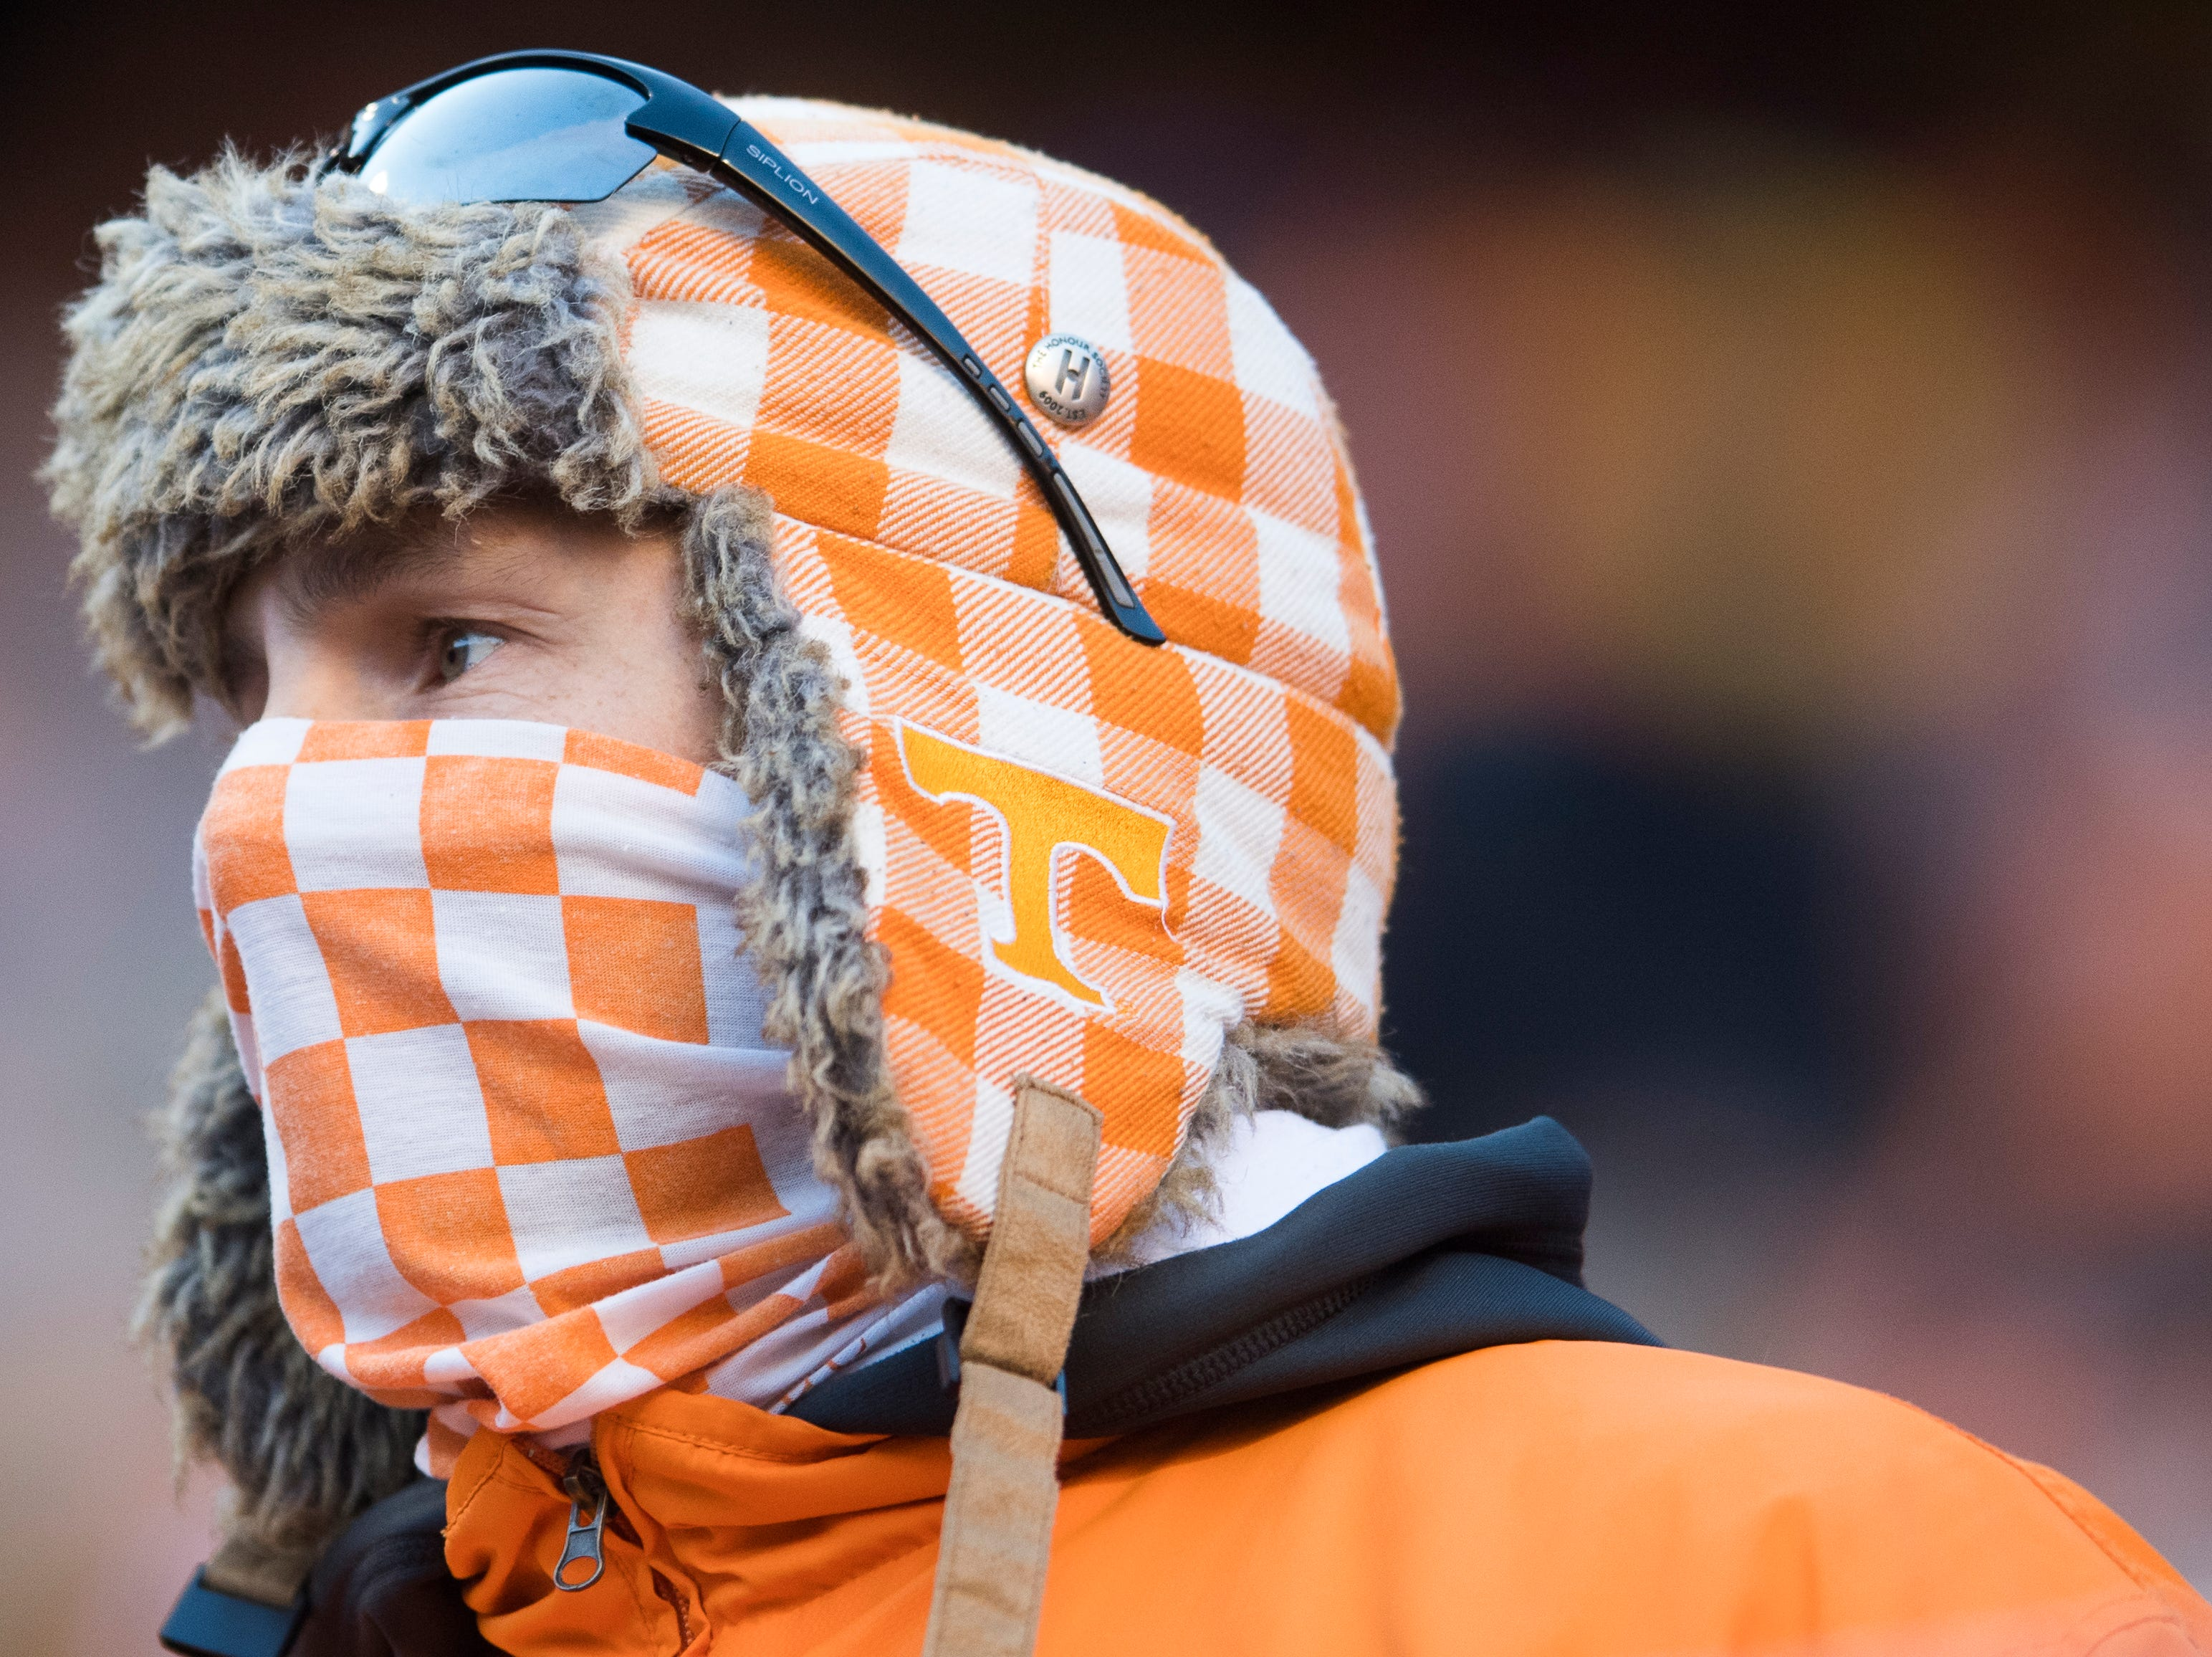 A Vol fan stays warm during a game between Tennessee and Kentucky at Neyland Stadium in Knoxville, Tennessee on Saturday, November 10, 2018.